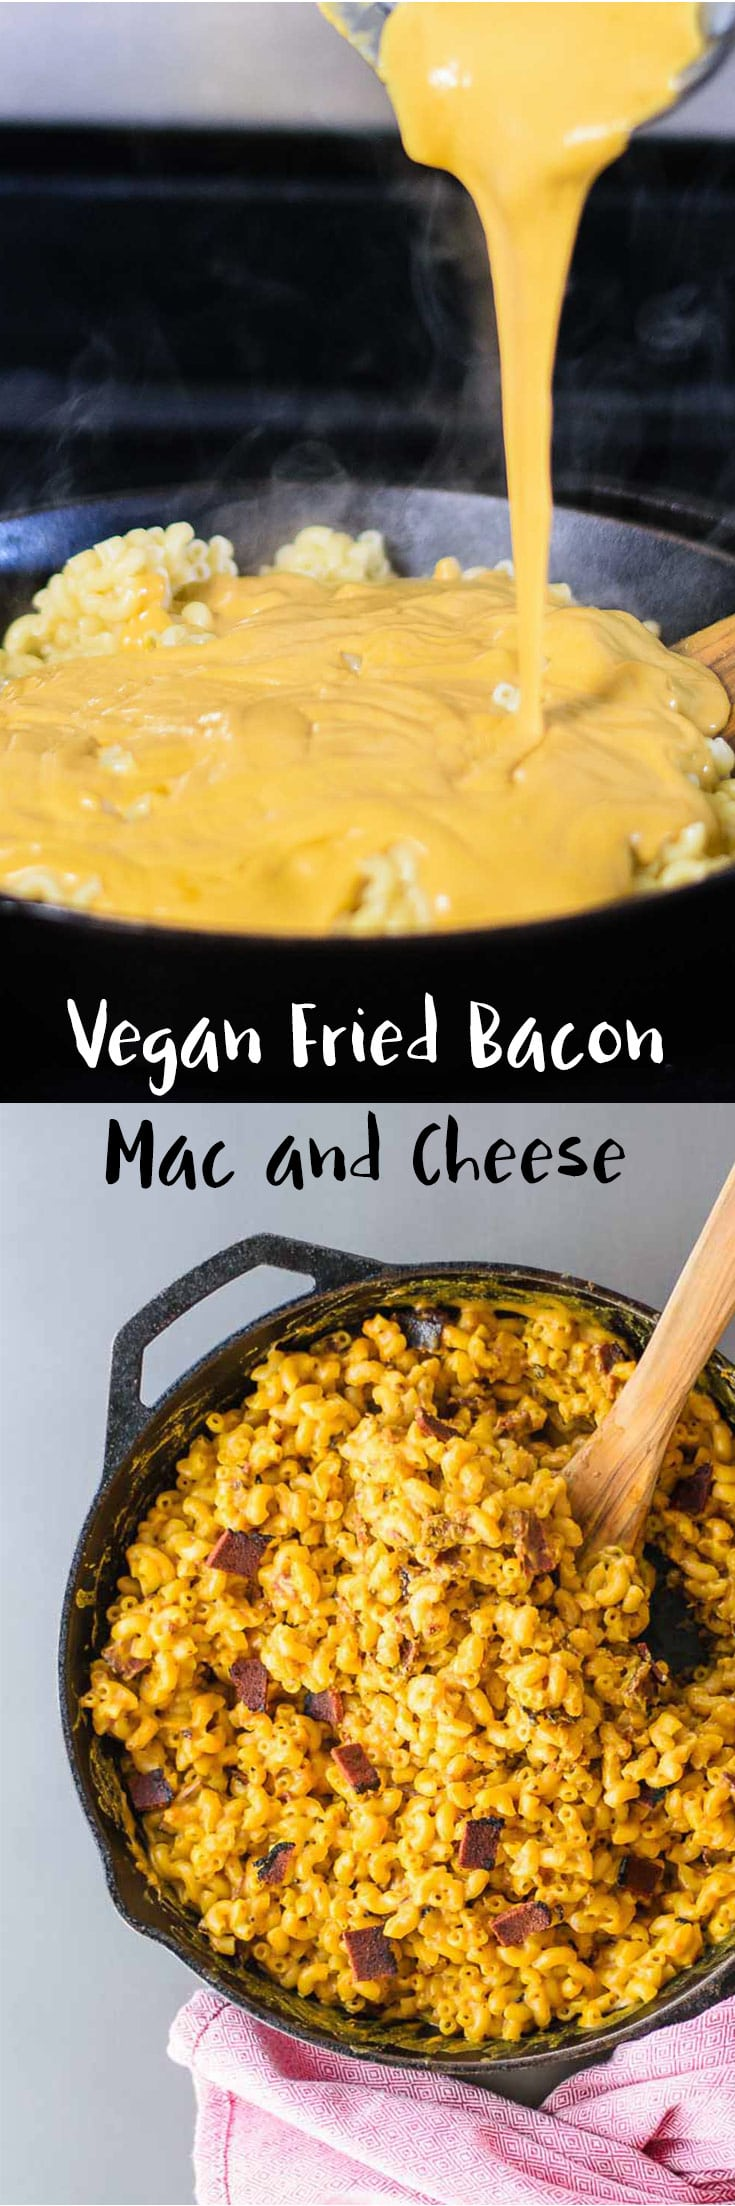 Vegan Fried Bacon Mac & Cheese | Macaroni is tossed in a creamy vegan cheese sauce and fried alongside seitan bacon for a delicious and indulgent-tasting meal. | thecuriouschickpea.com